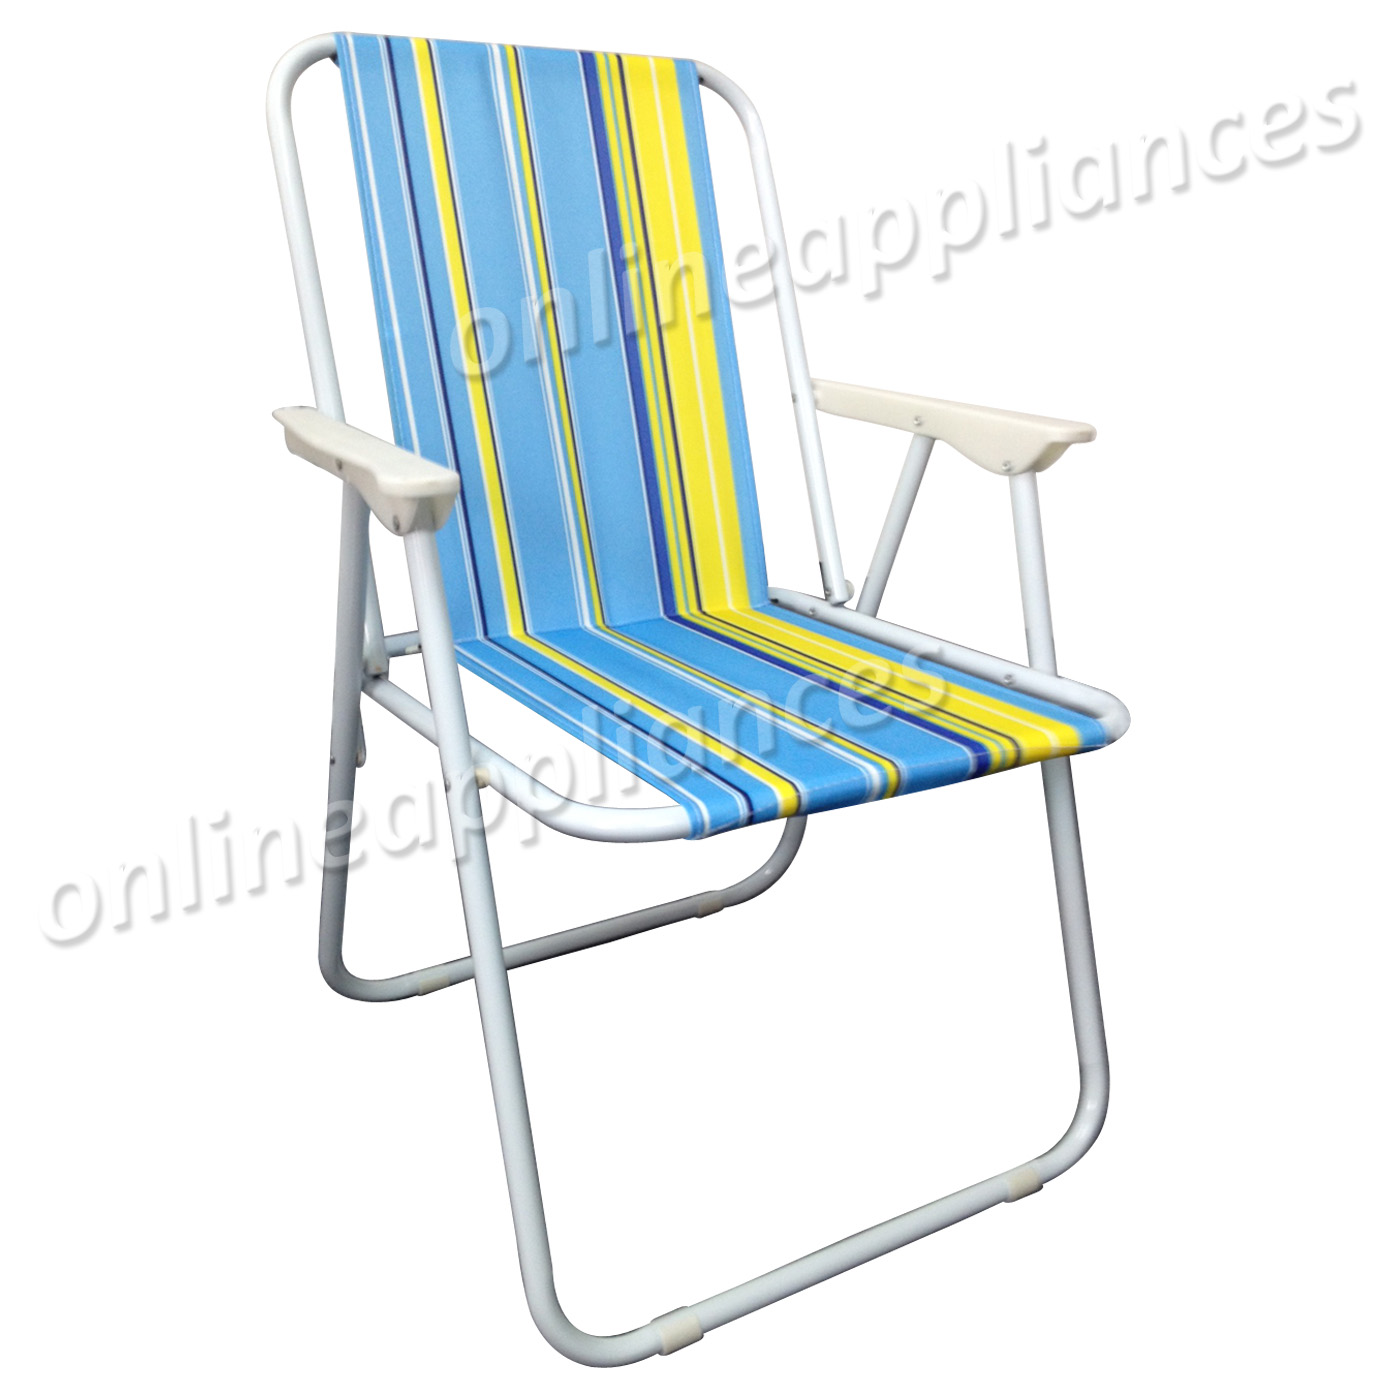 Garden Furniture Folding Chairs Images You Eat Outdoor